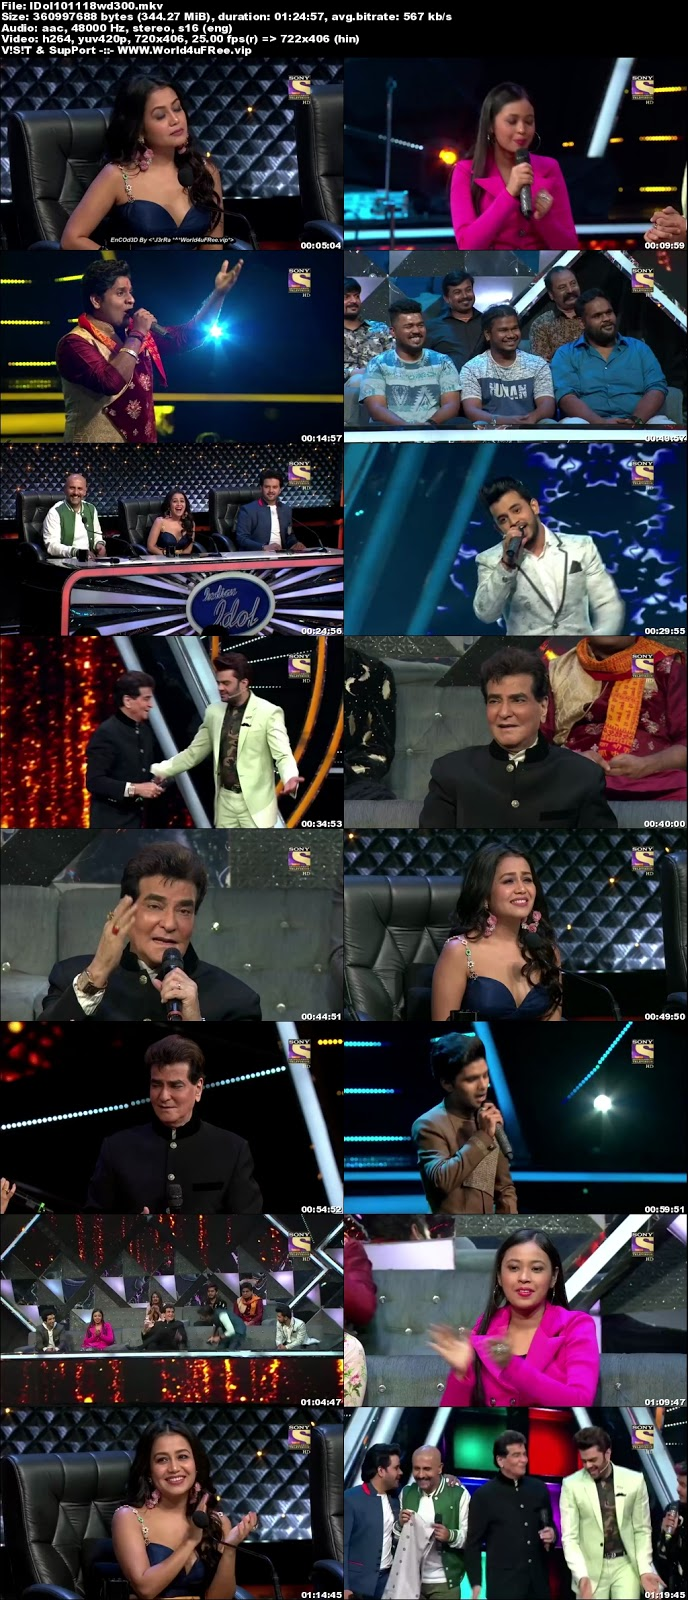 Indian Idol Season 10 10 November 2018 HDTV 480p 300Mb  world4ufree.vip tv show Indian Idol Season 10 hindi tv show Indian Idol Season 10  Sony Set  tv show compressed small size free download or watch online at world4ufree.vip